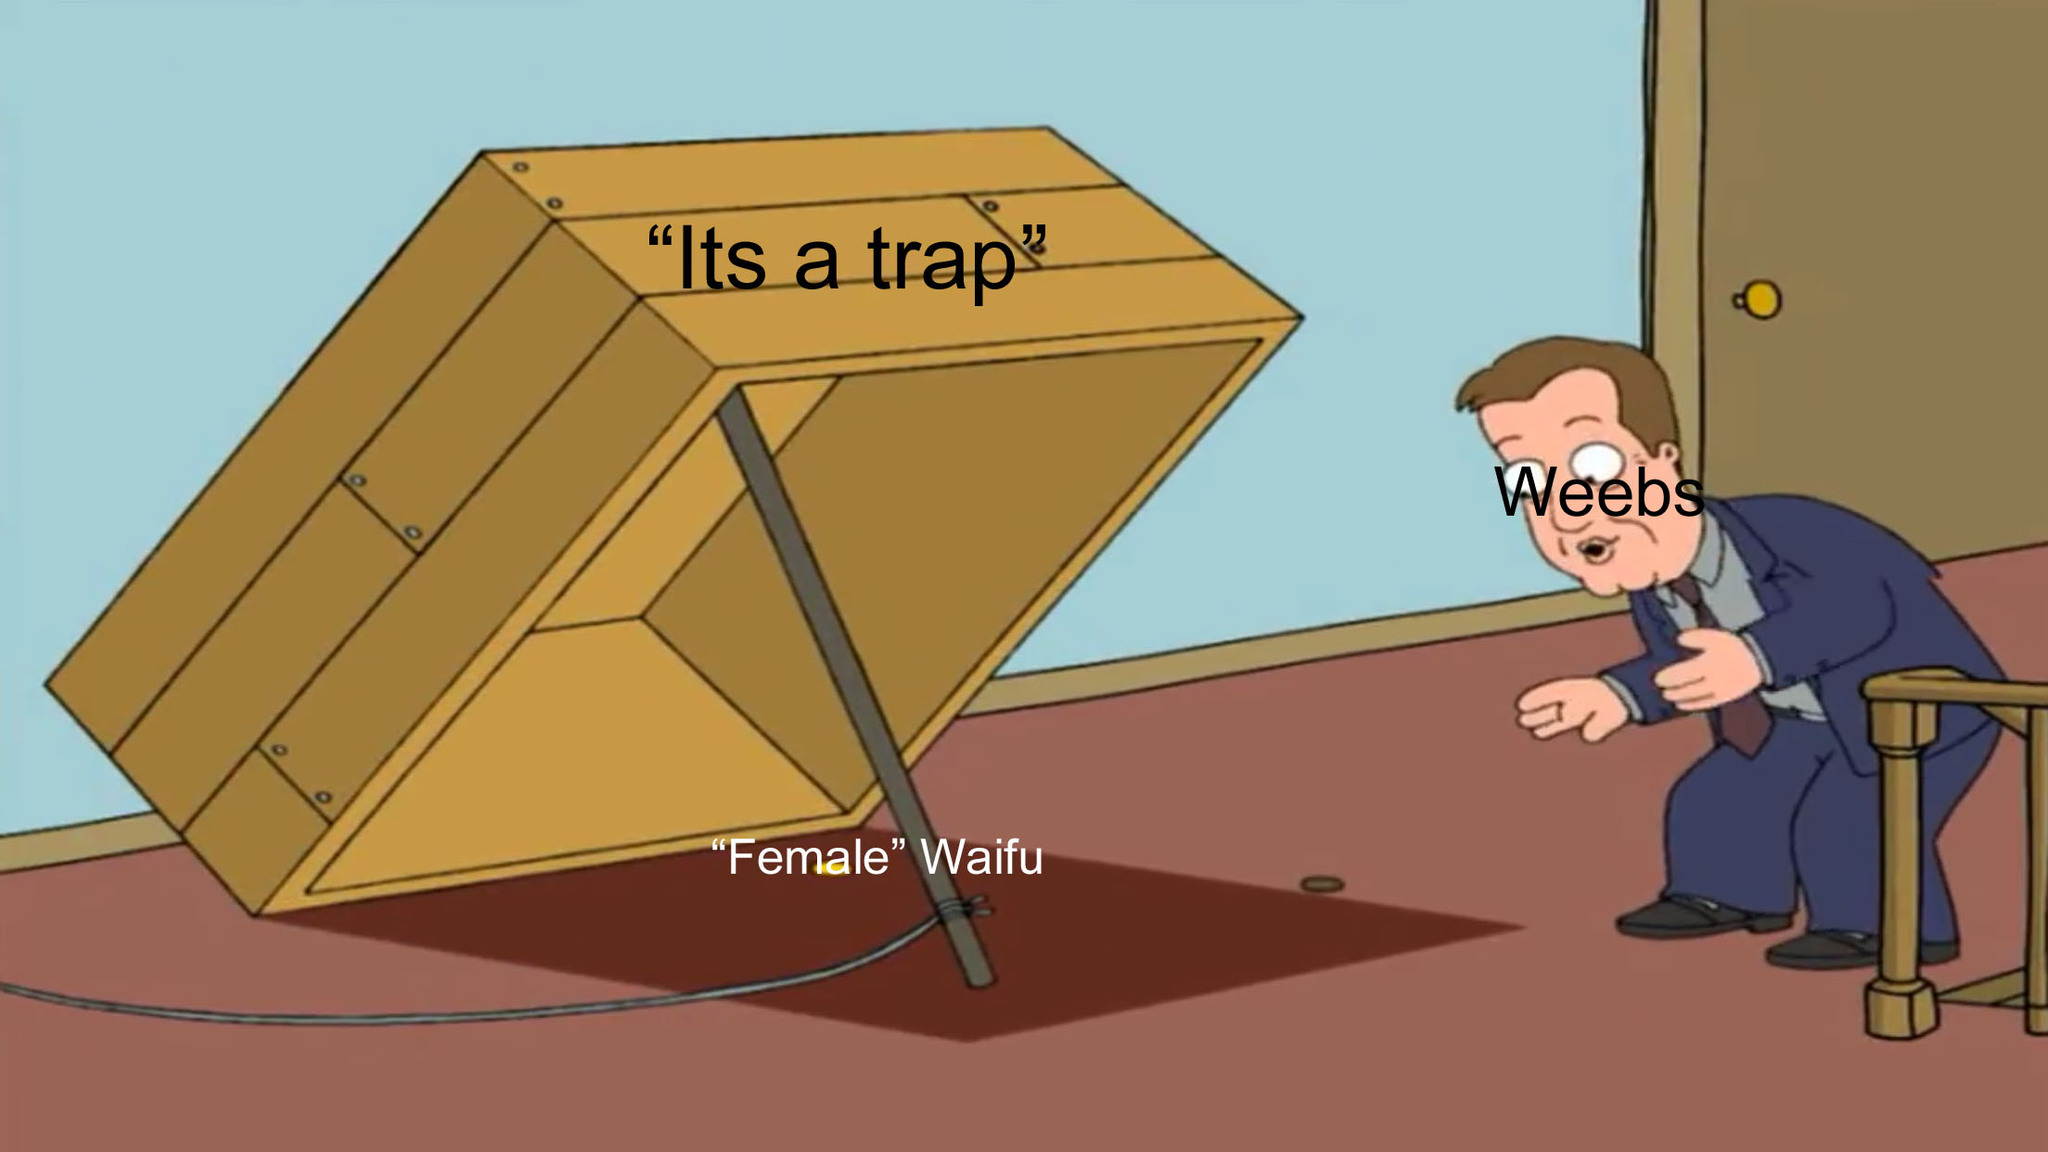 Trapped by a trap - meme